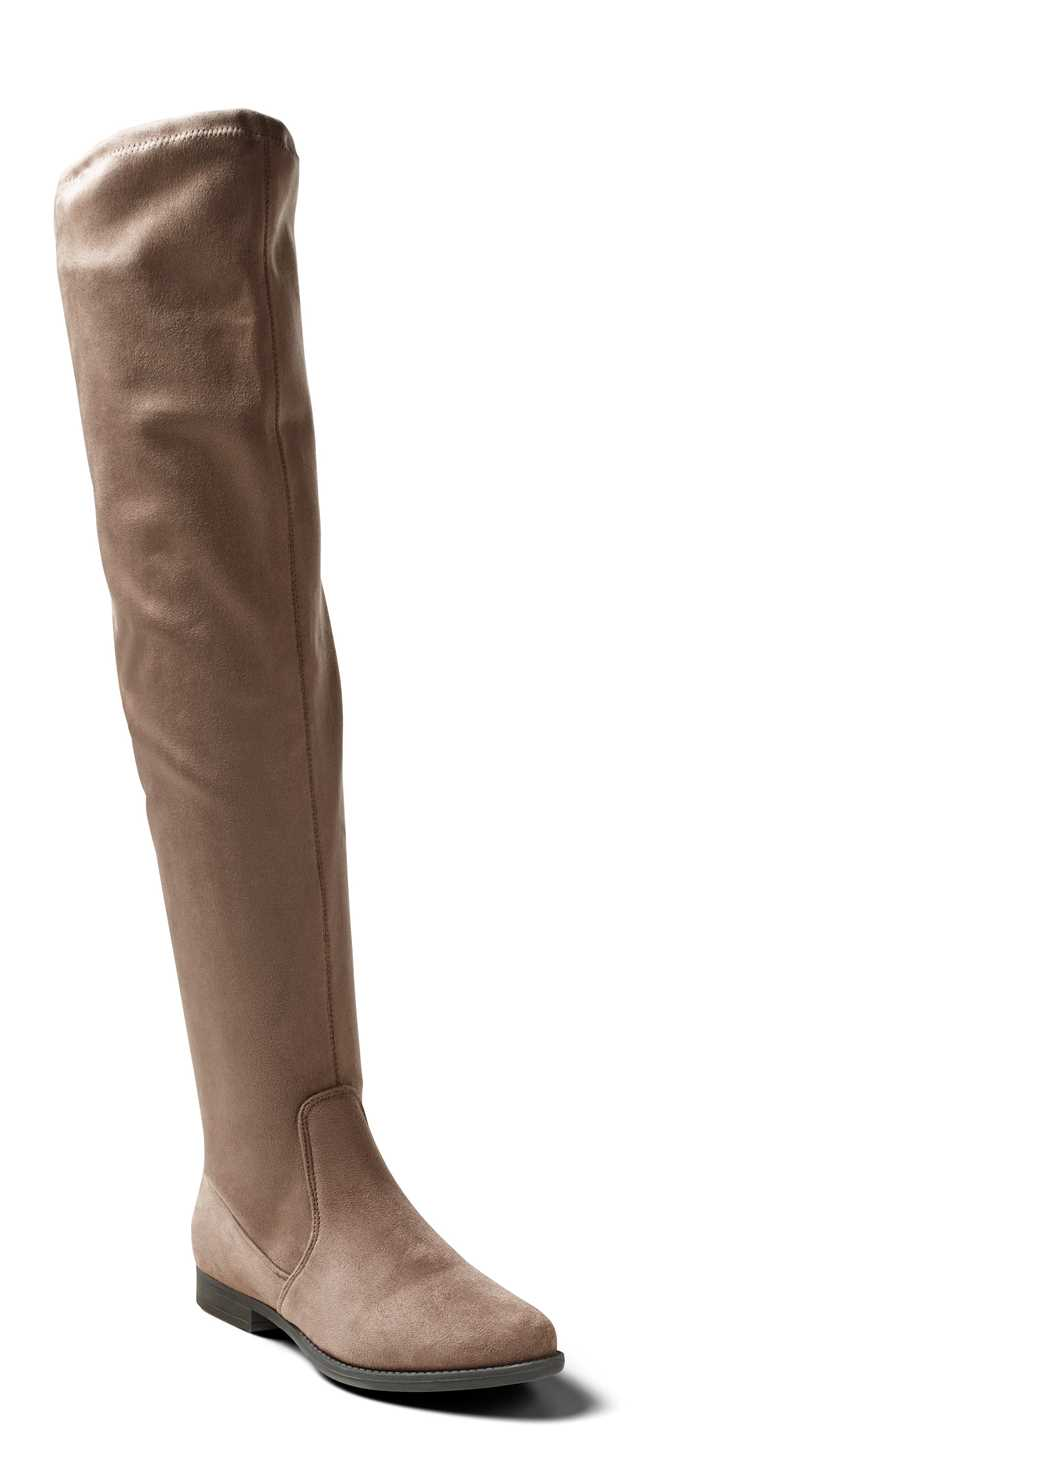 Over The Knee Stretch Boots,Ruched Ombre Top,Mid Rise Color Skinny Jeans